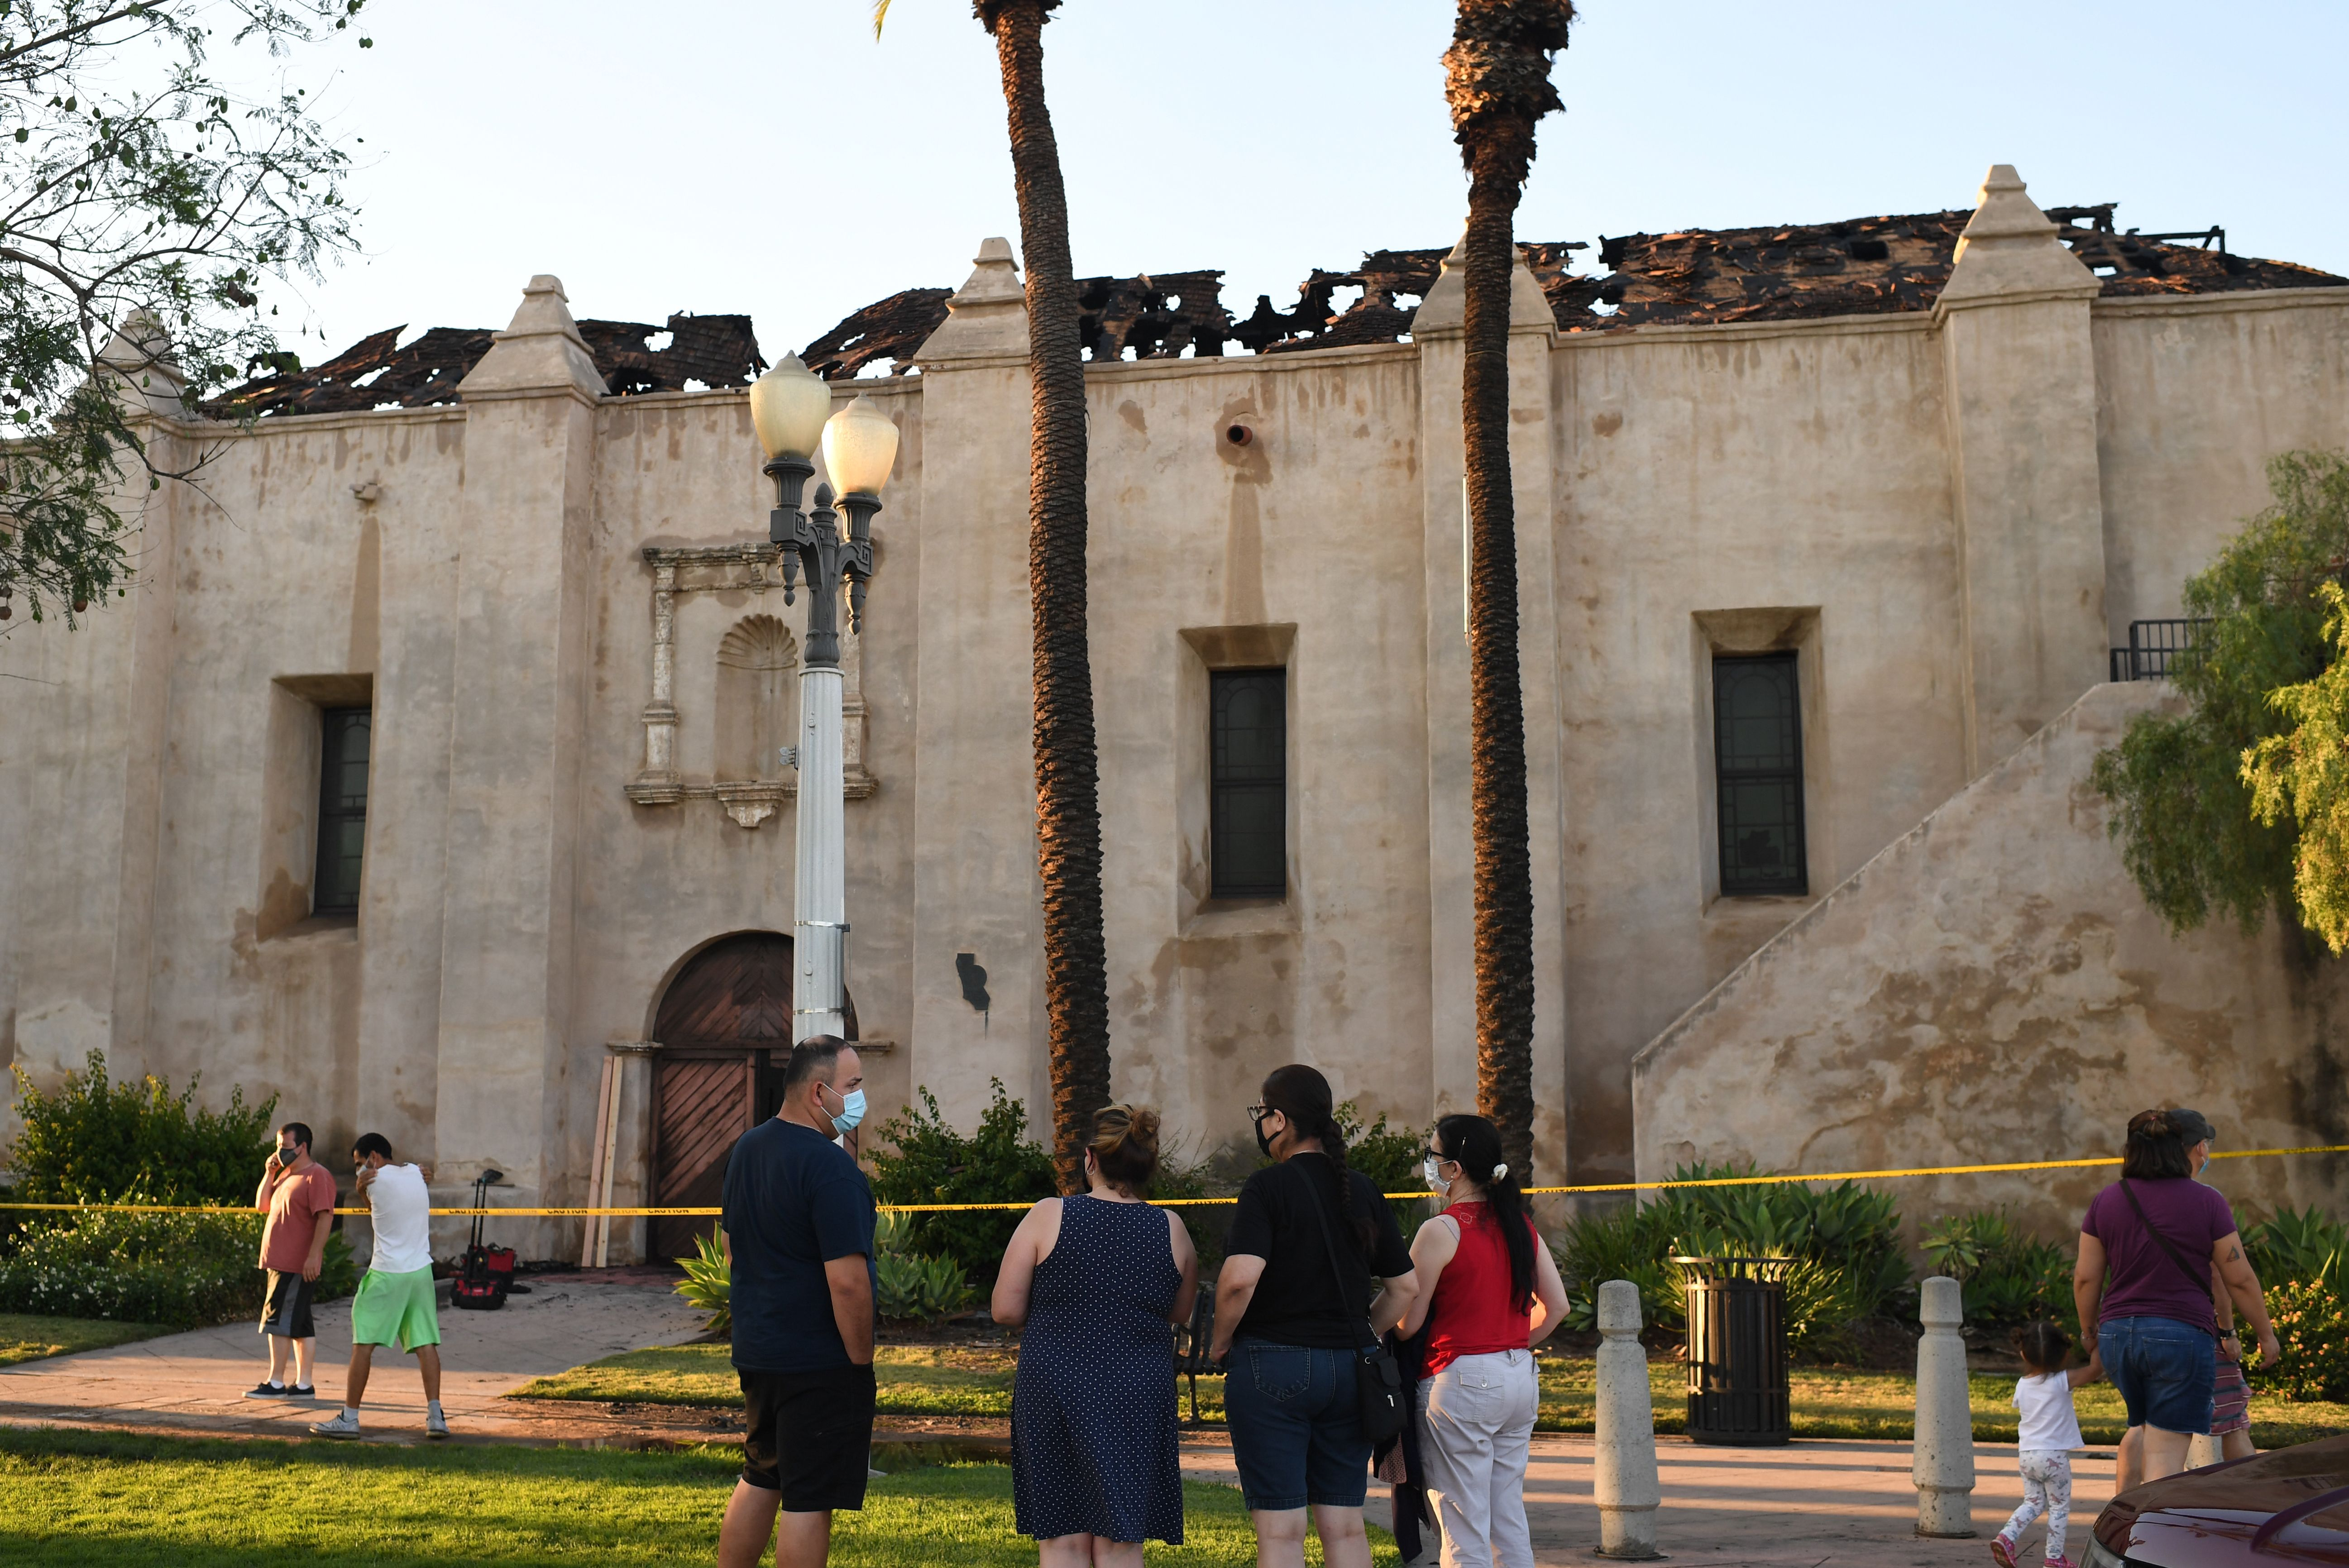 The damaged roof of the San Gabriel Mission is seen after a fire broke out early on July 11, 2020, in San Gabriel, California. (Photo by ROBYN BECK/AFP via Getty Images)